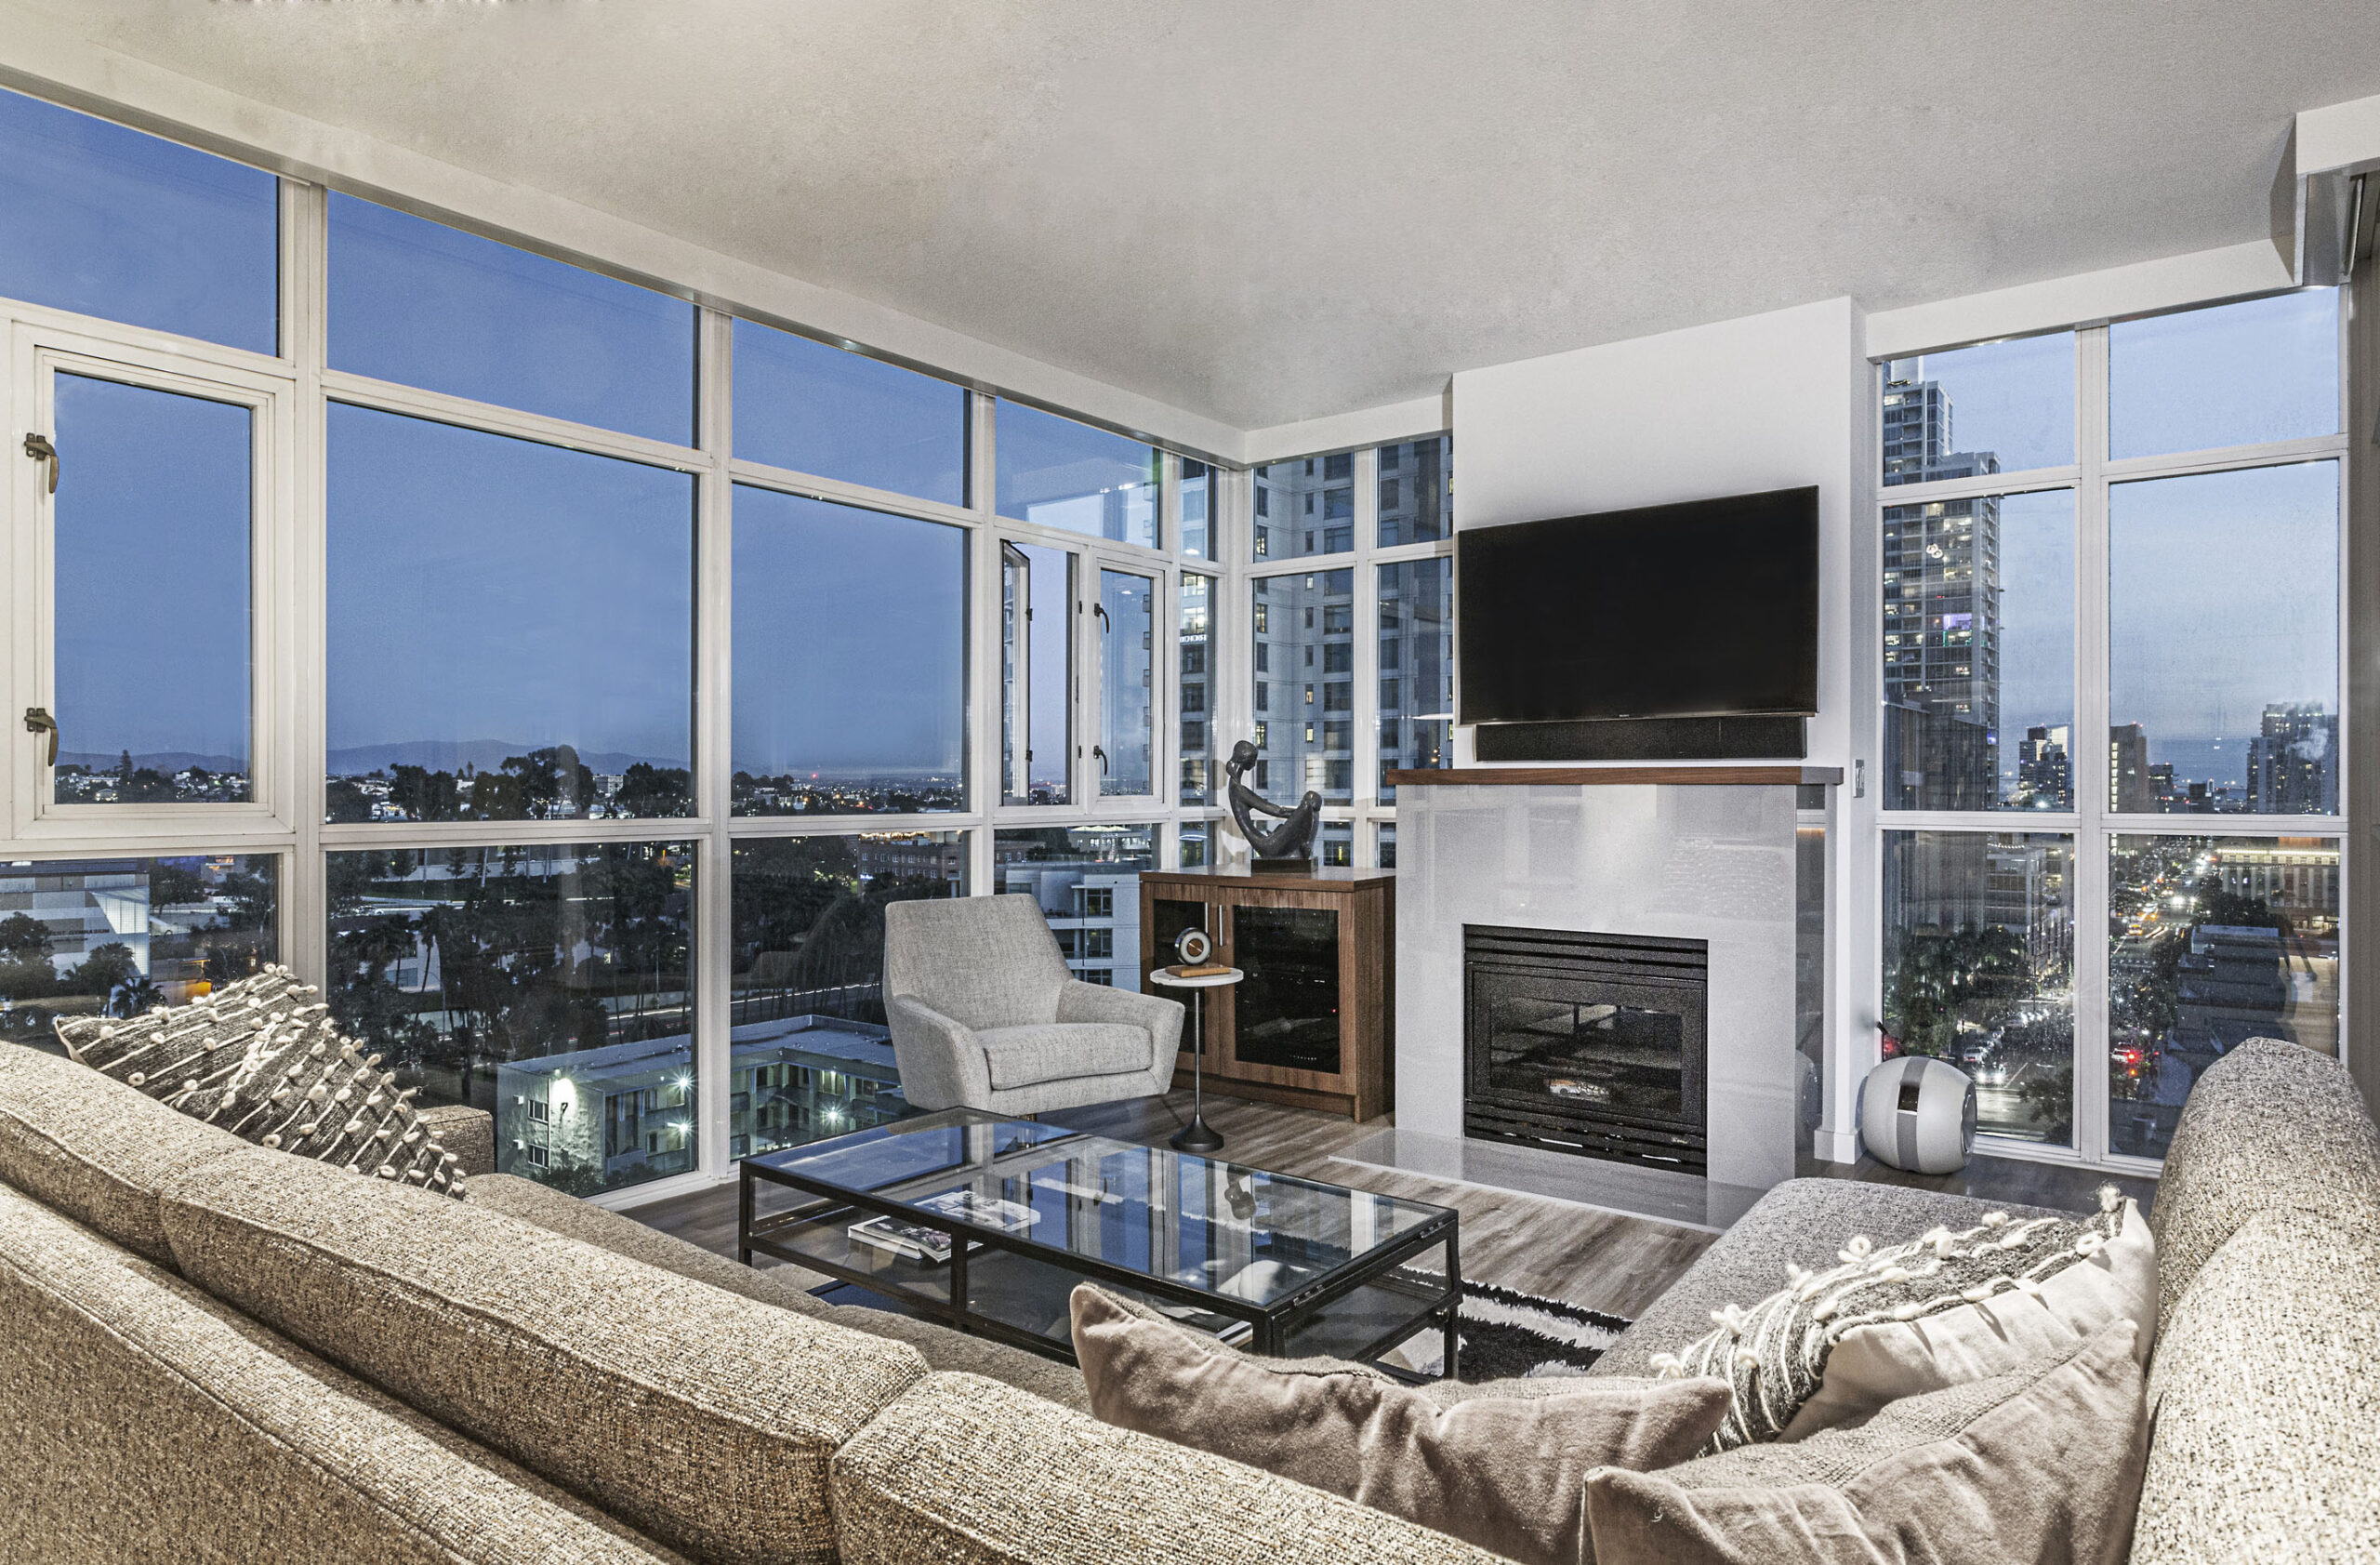 Condo at The Discovery